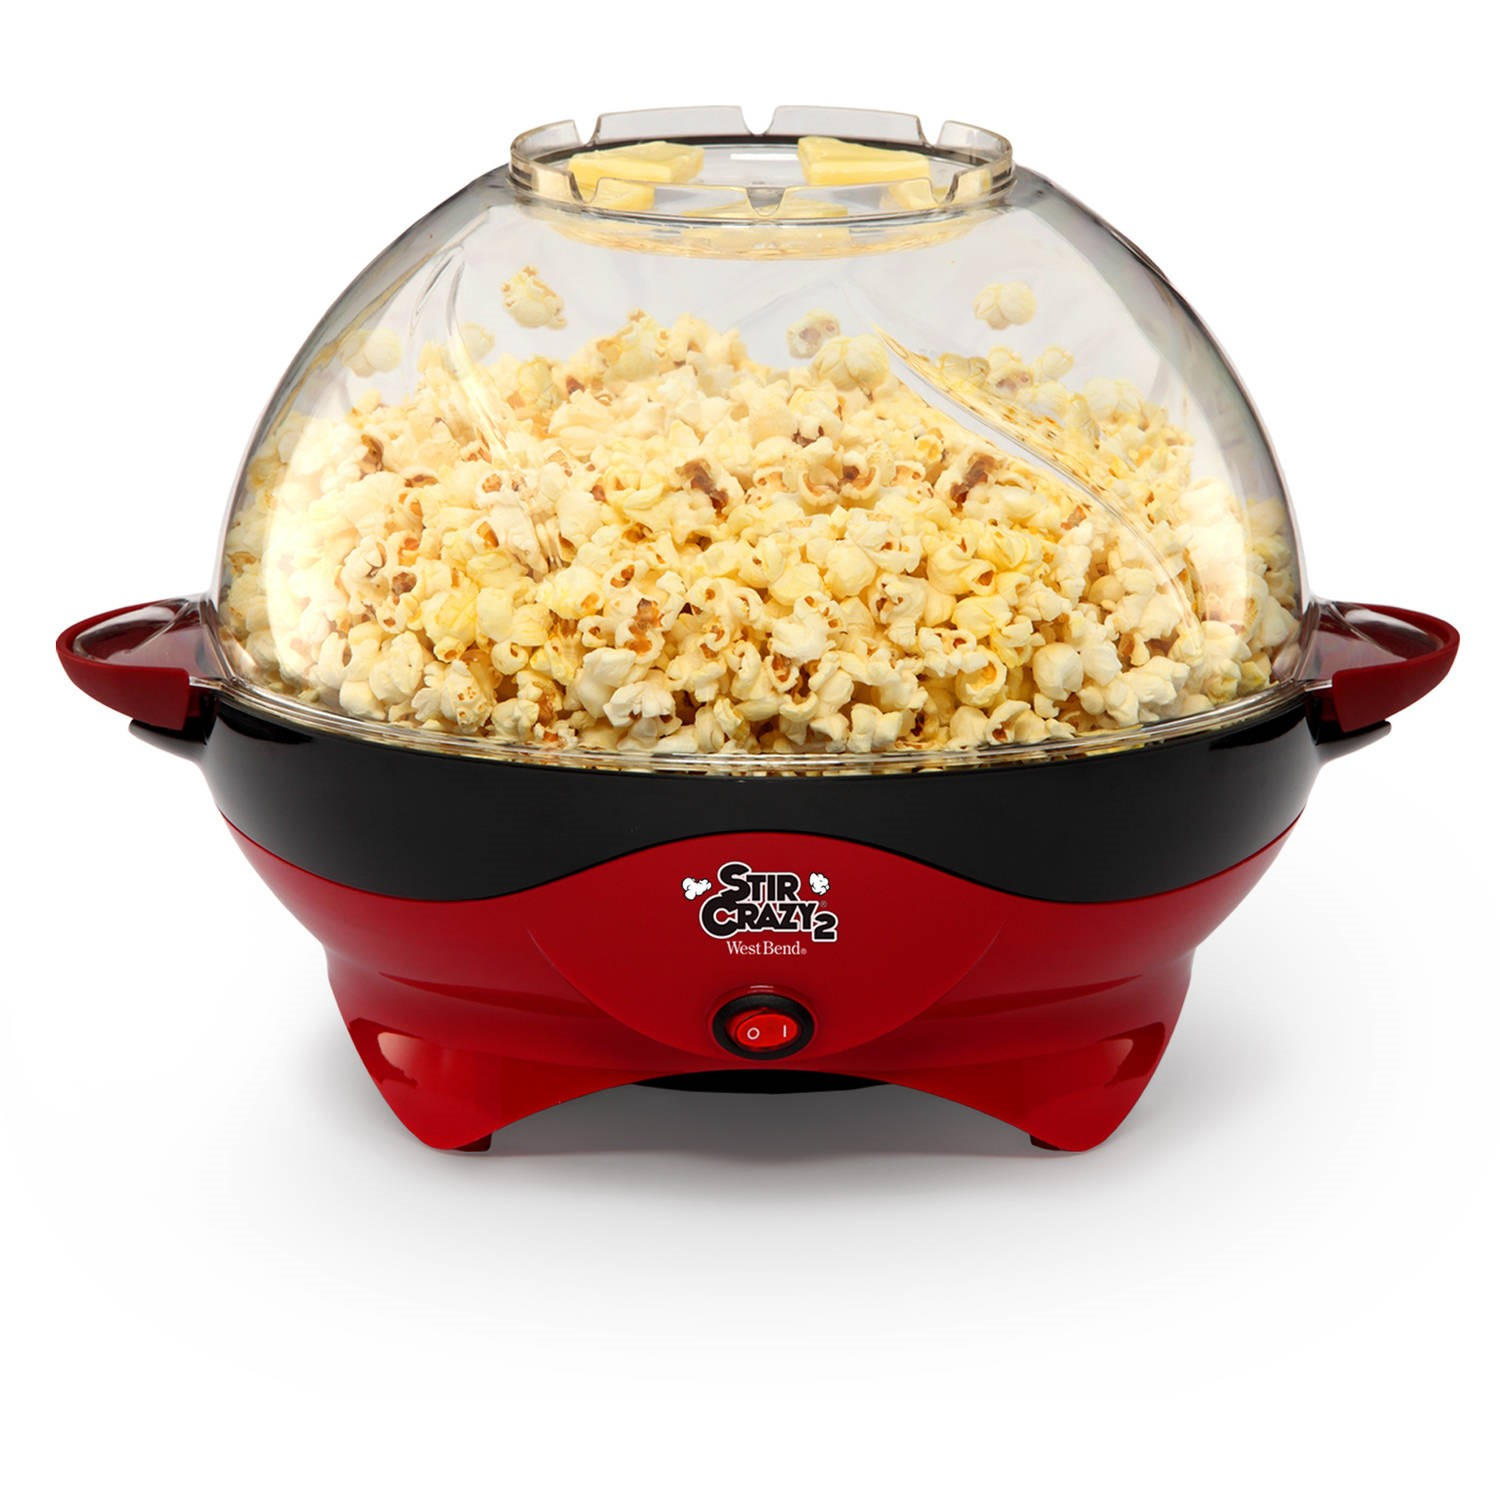 West Bend Stir Crazy Deluxe Popcorn Popper, Red